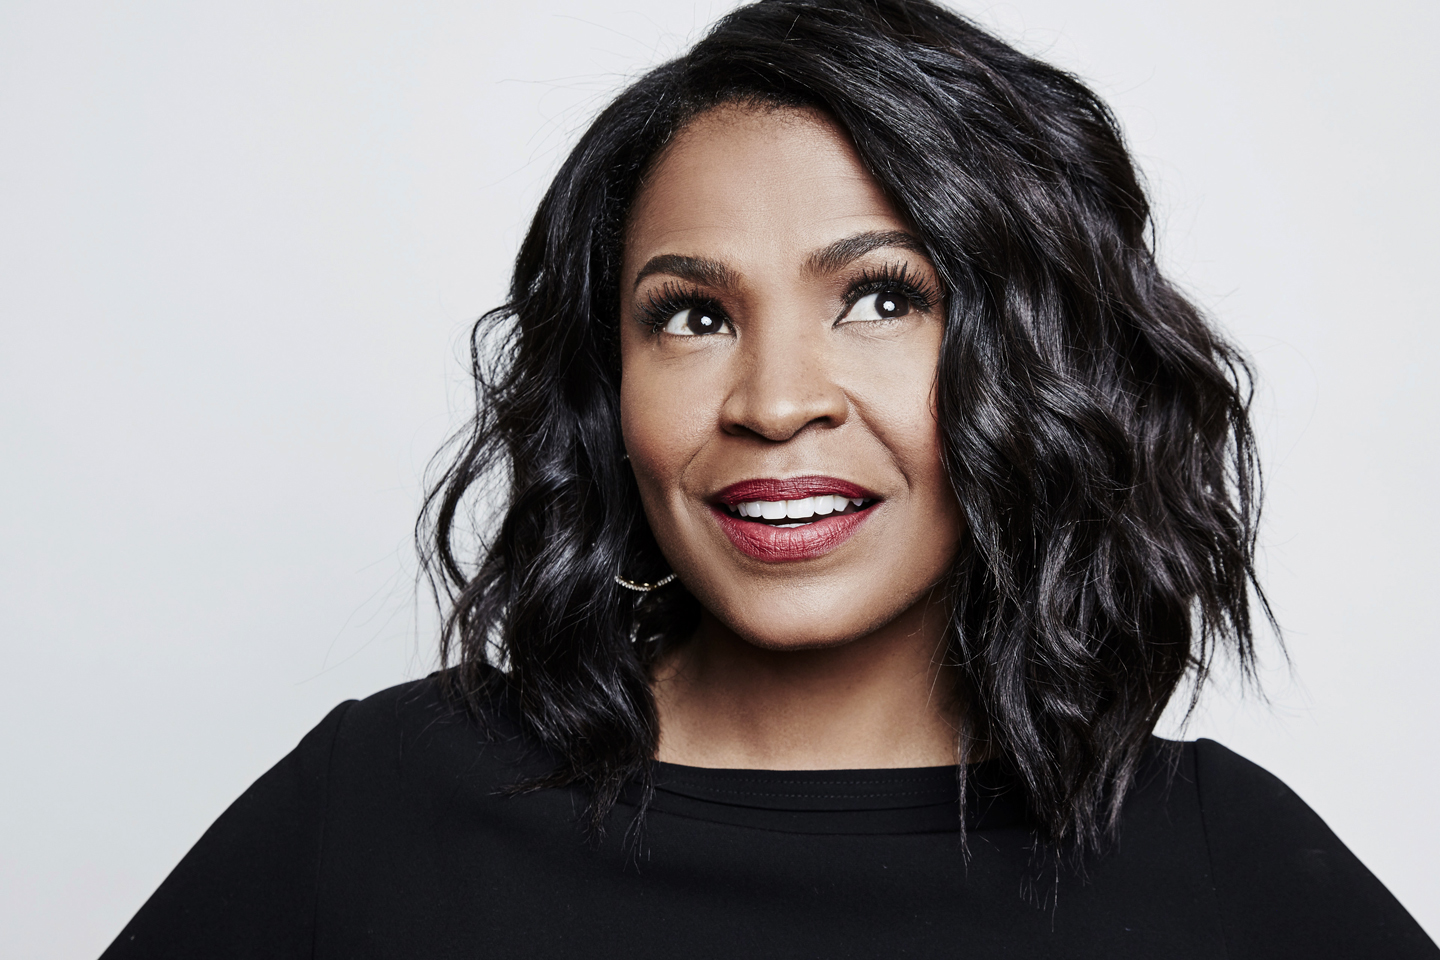 Nia Long of ABC Network's 'Uncle Buck' poses in the Getty Images Portrait Studio at the 2016 Winter Television Critics Association press tour at the Langham Hotel on January 9, 2016 in Pasadena, California.